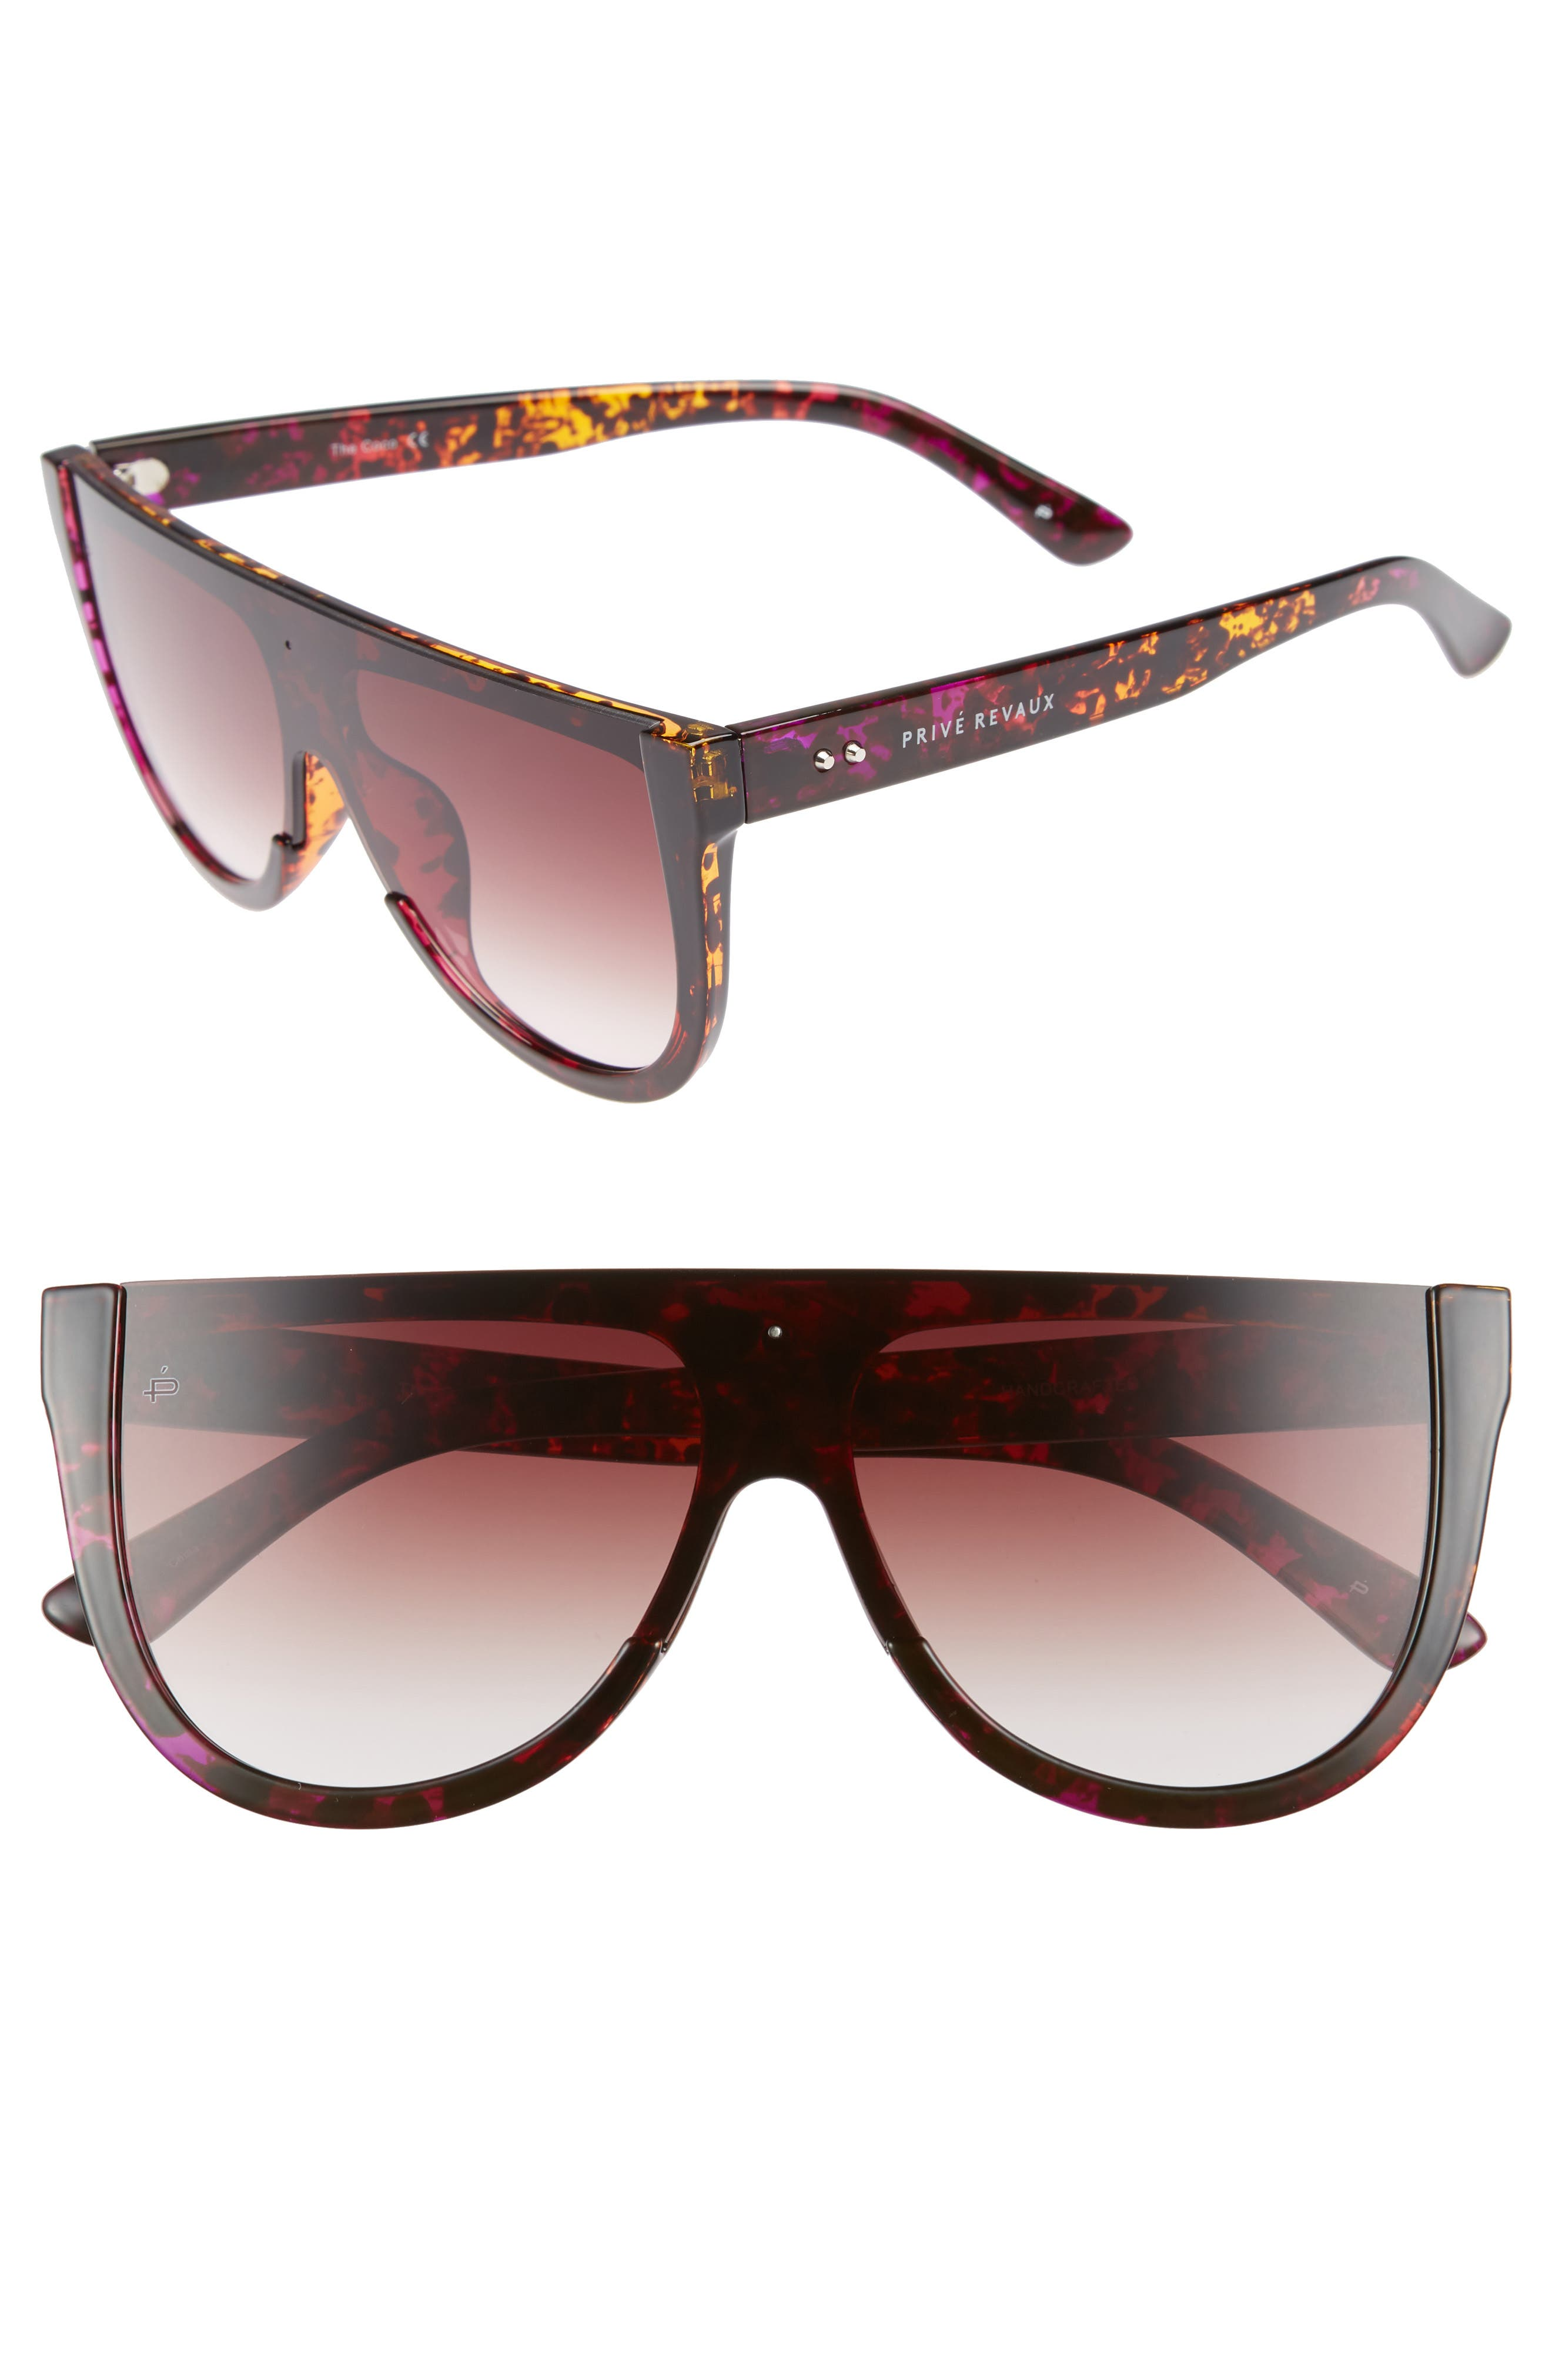 Privé Revaux The Coco 60mm Shield Sunglasses (Limited Edition)